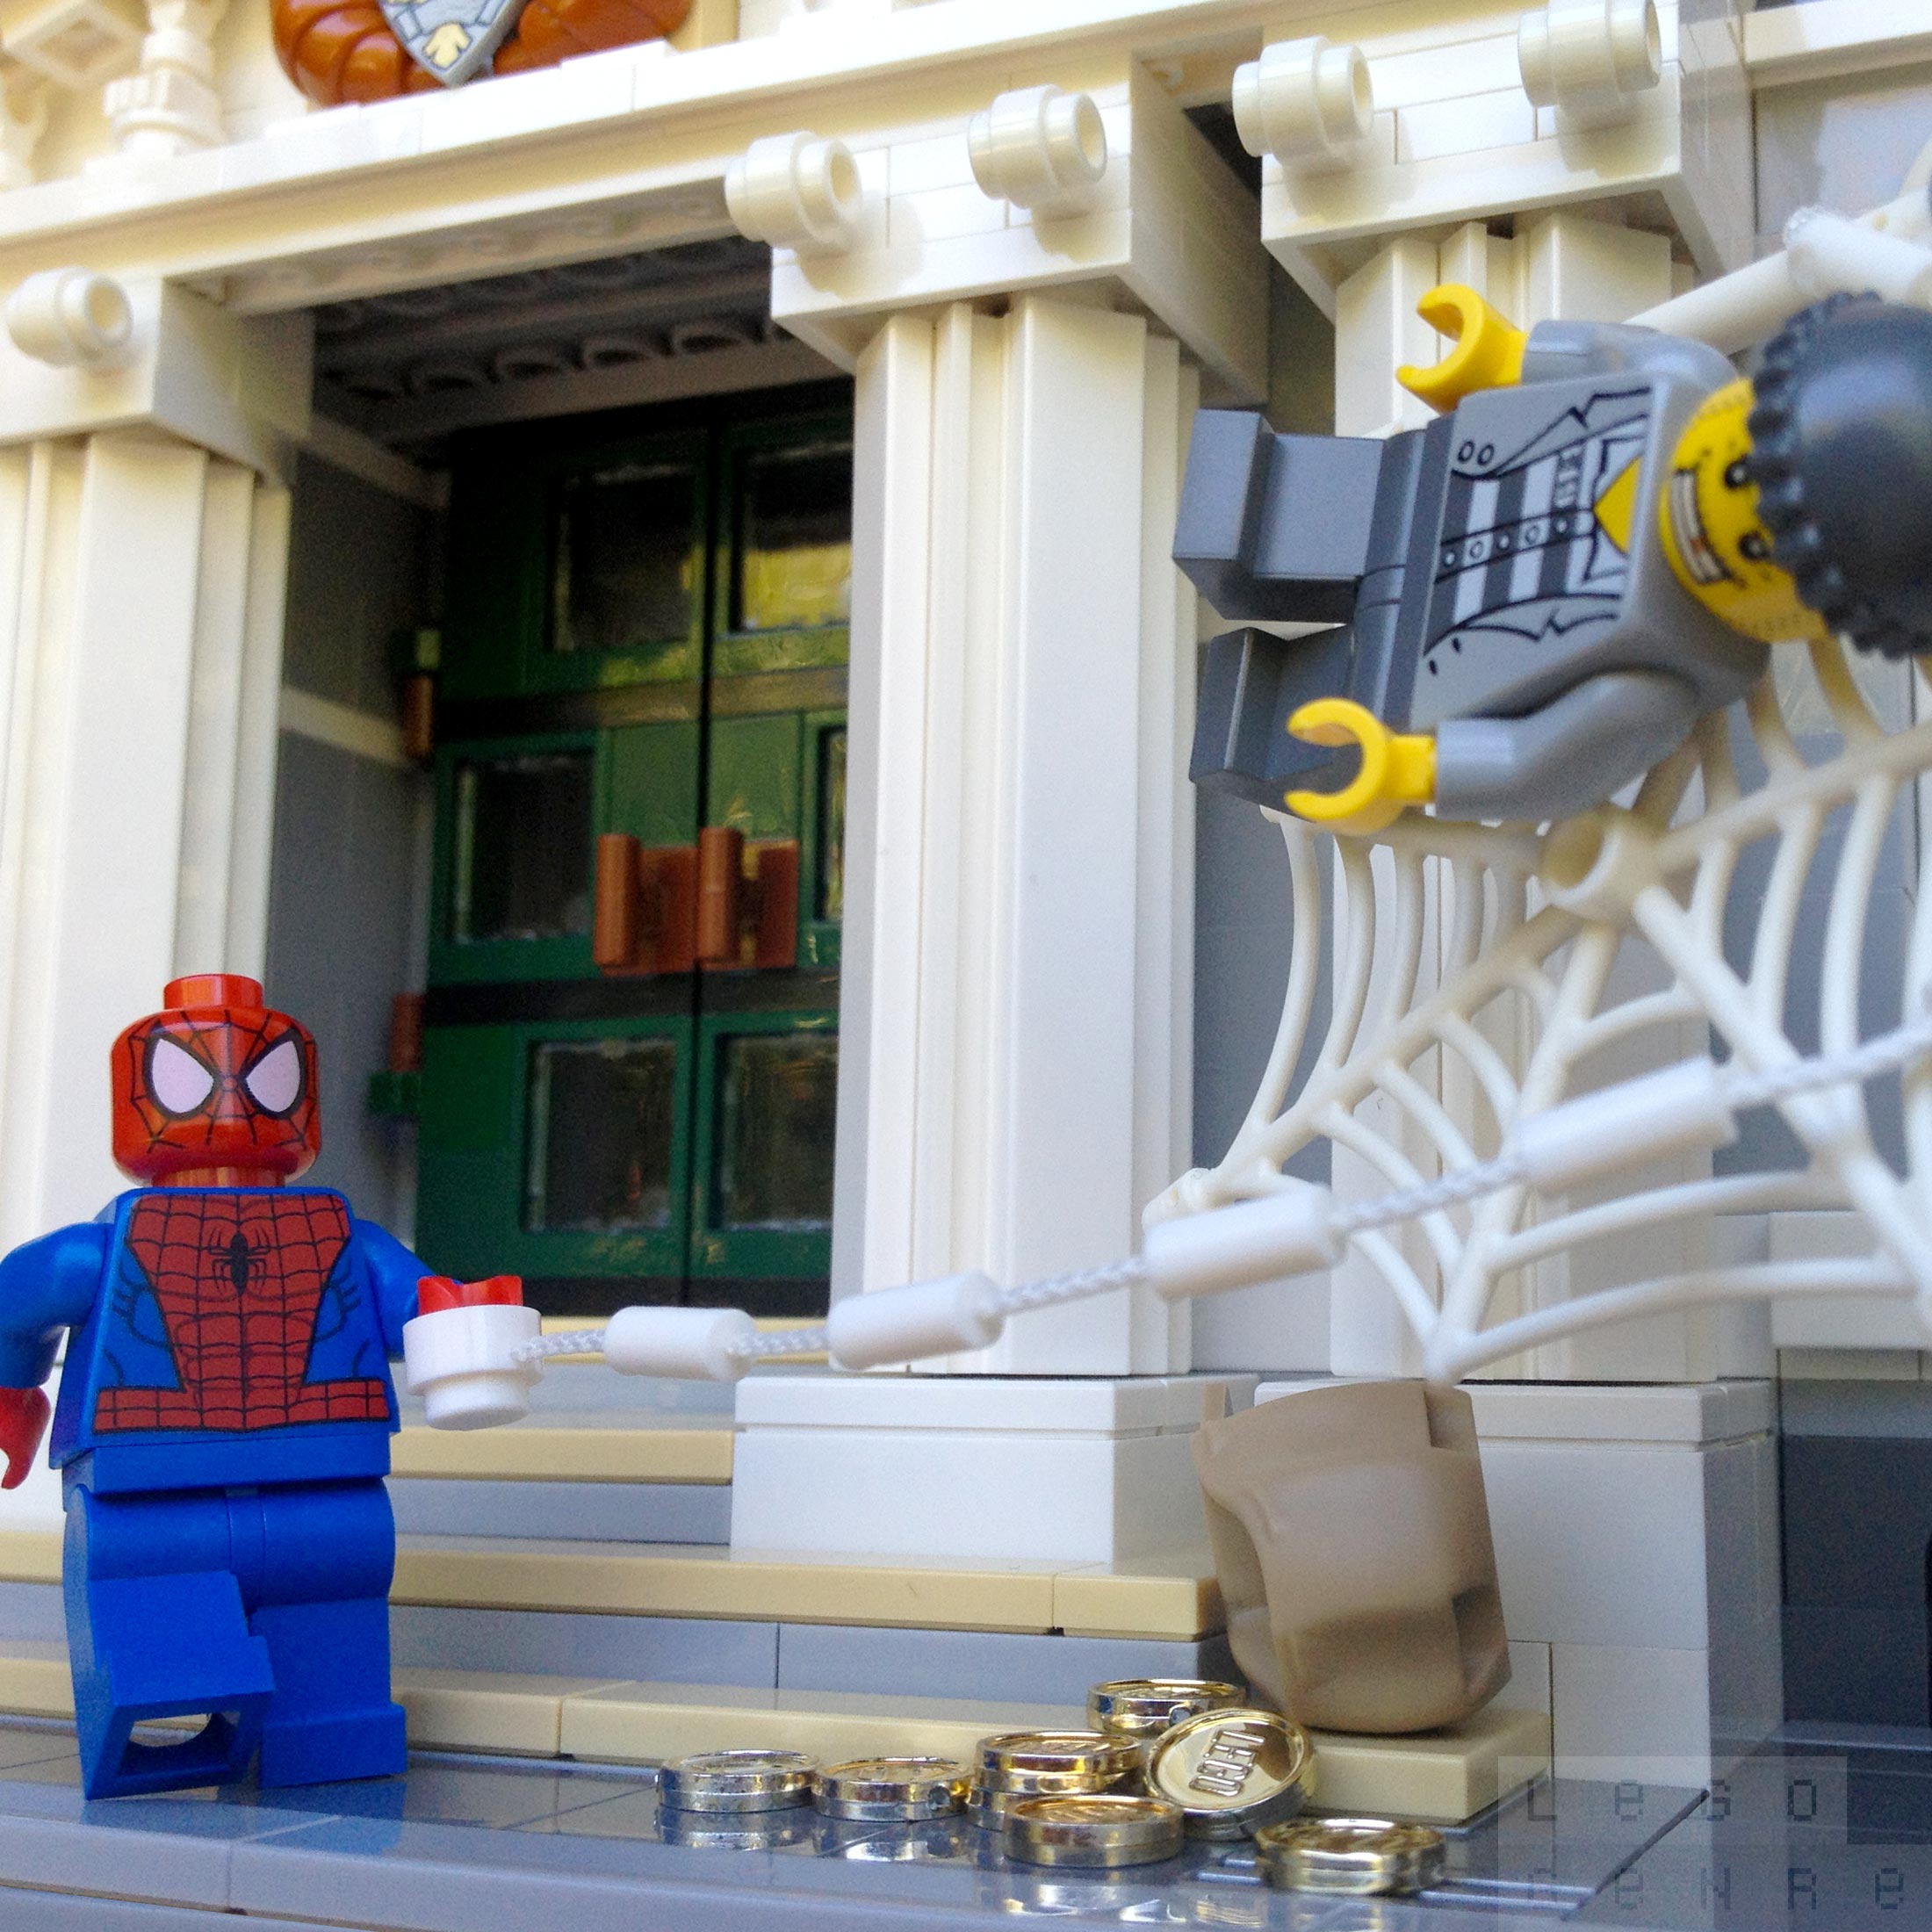 LegoGenre 00266: Friendly Neighborhood Spider-Man